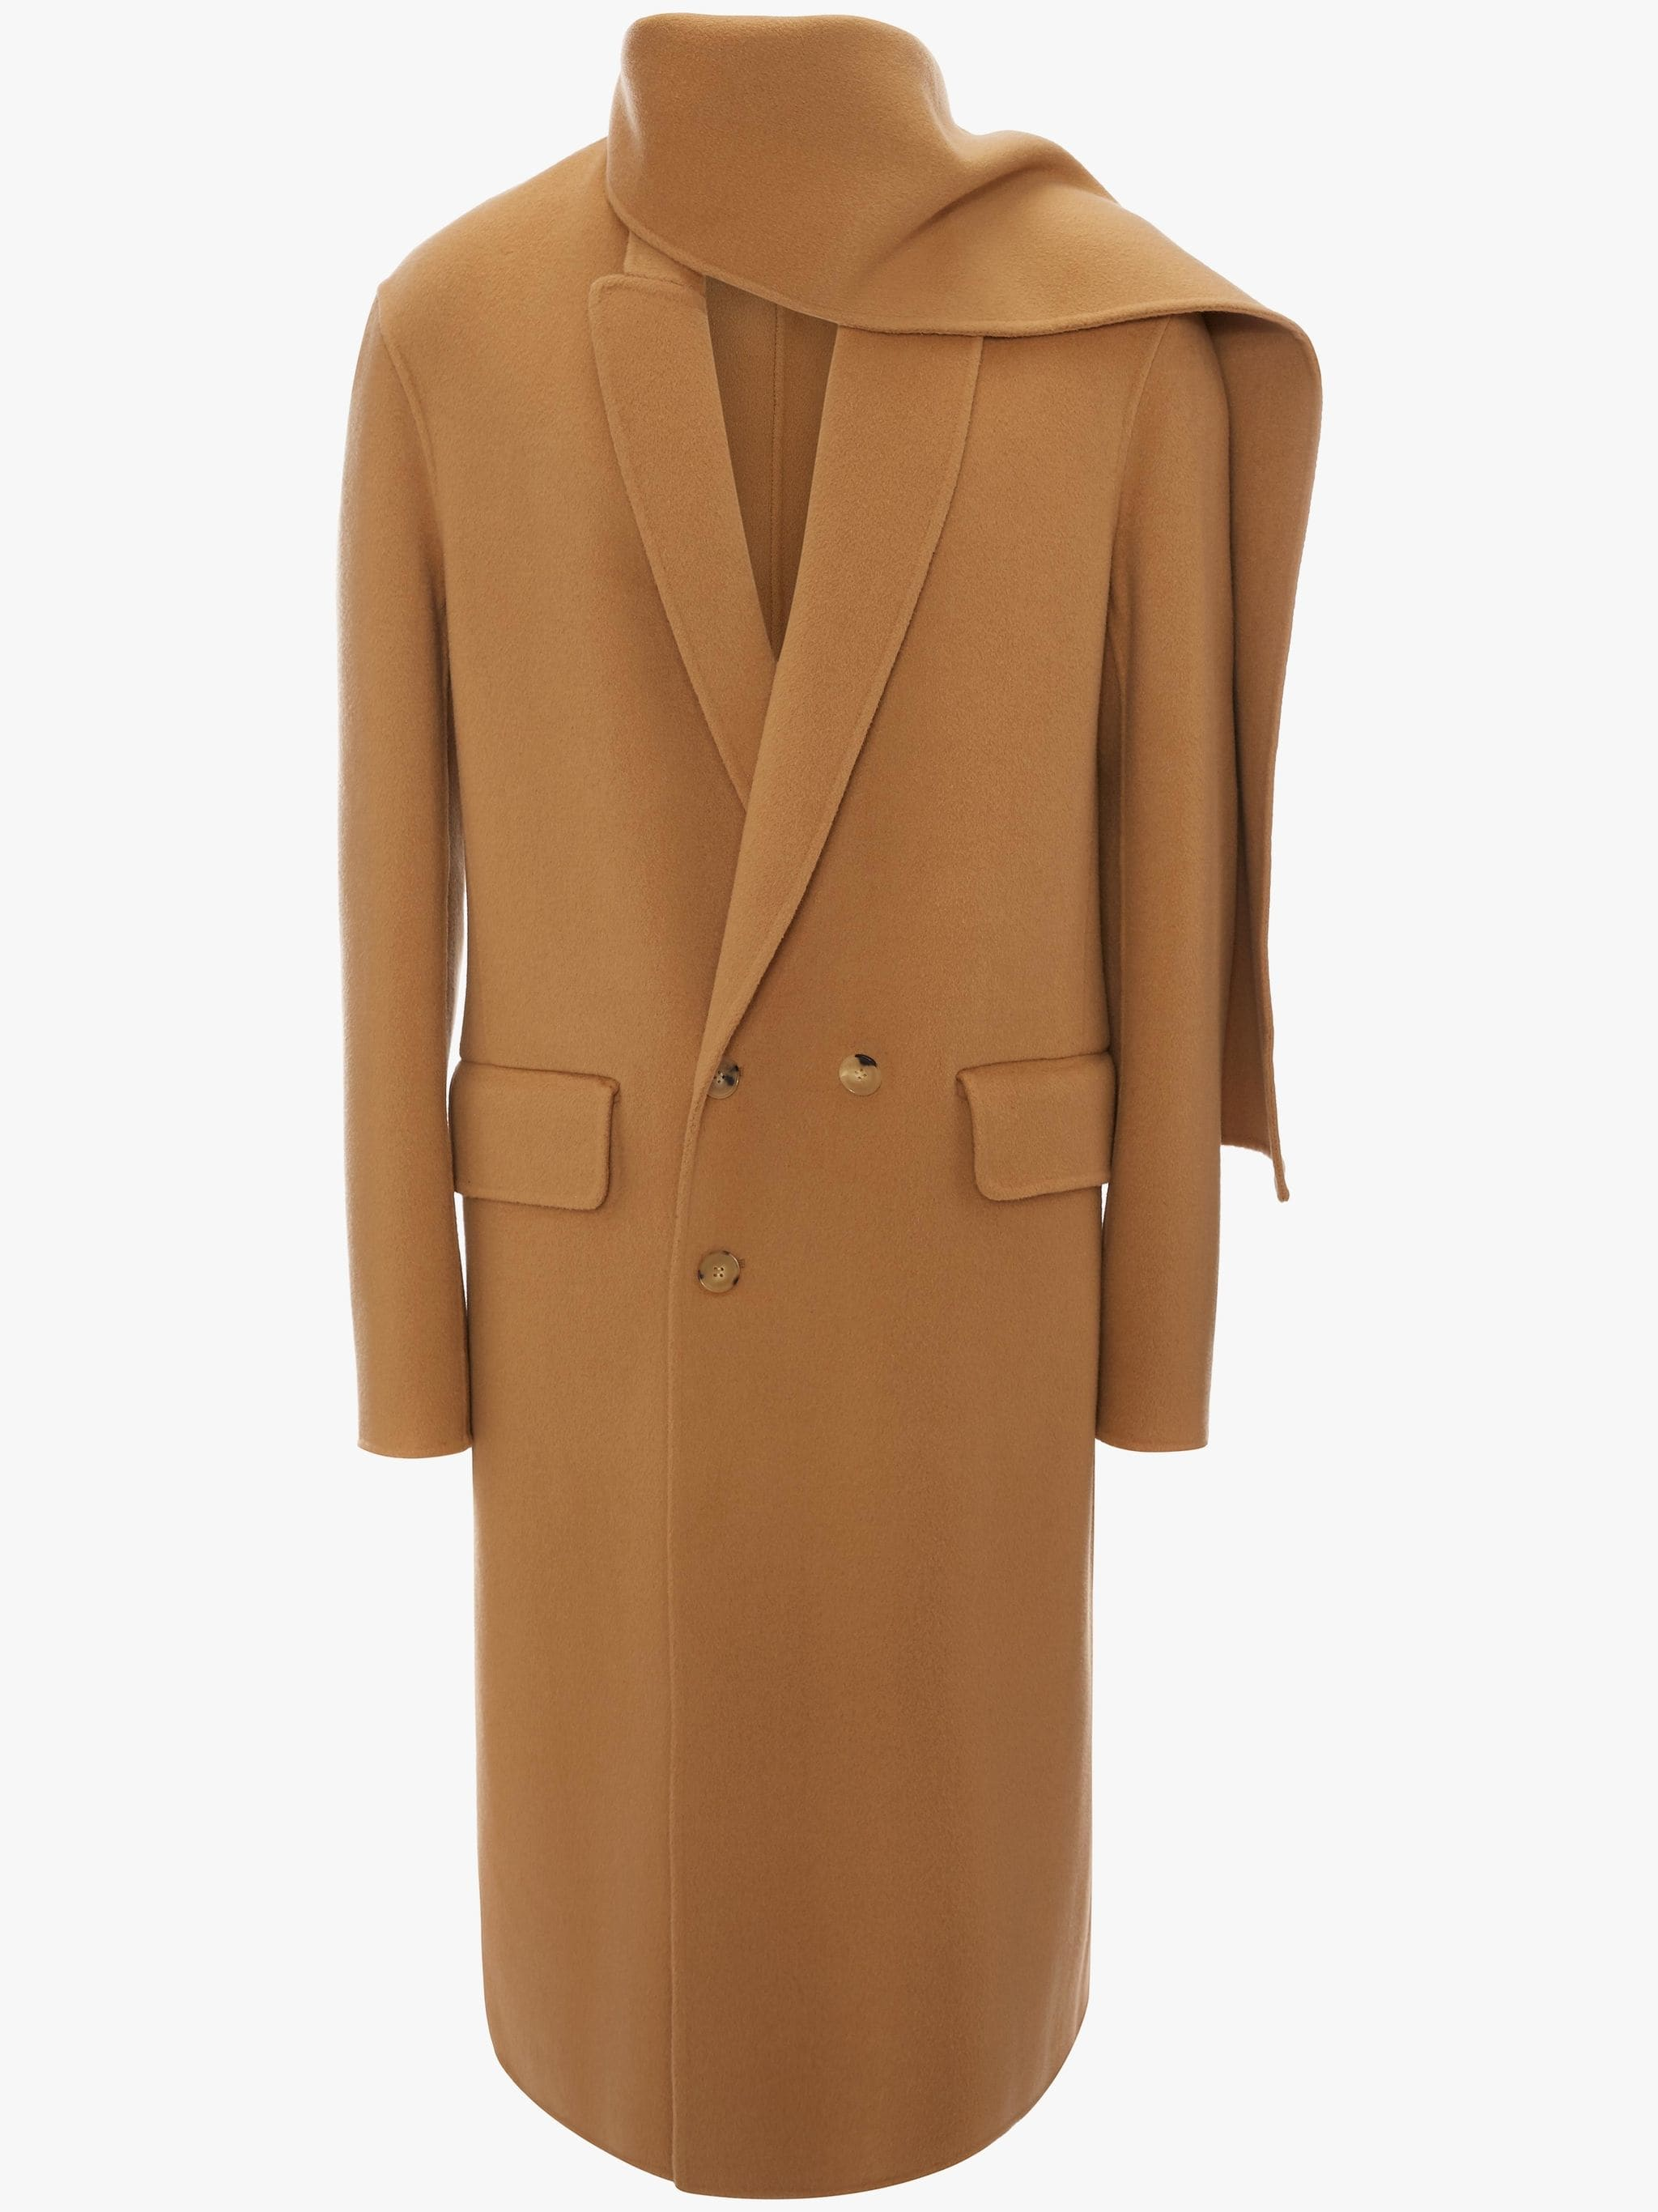 JW Anderson camel wool scarf coat - £1,100 - It's a scarf and a coat, so it's totally worth the price tag.